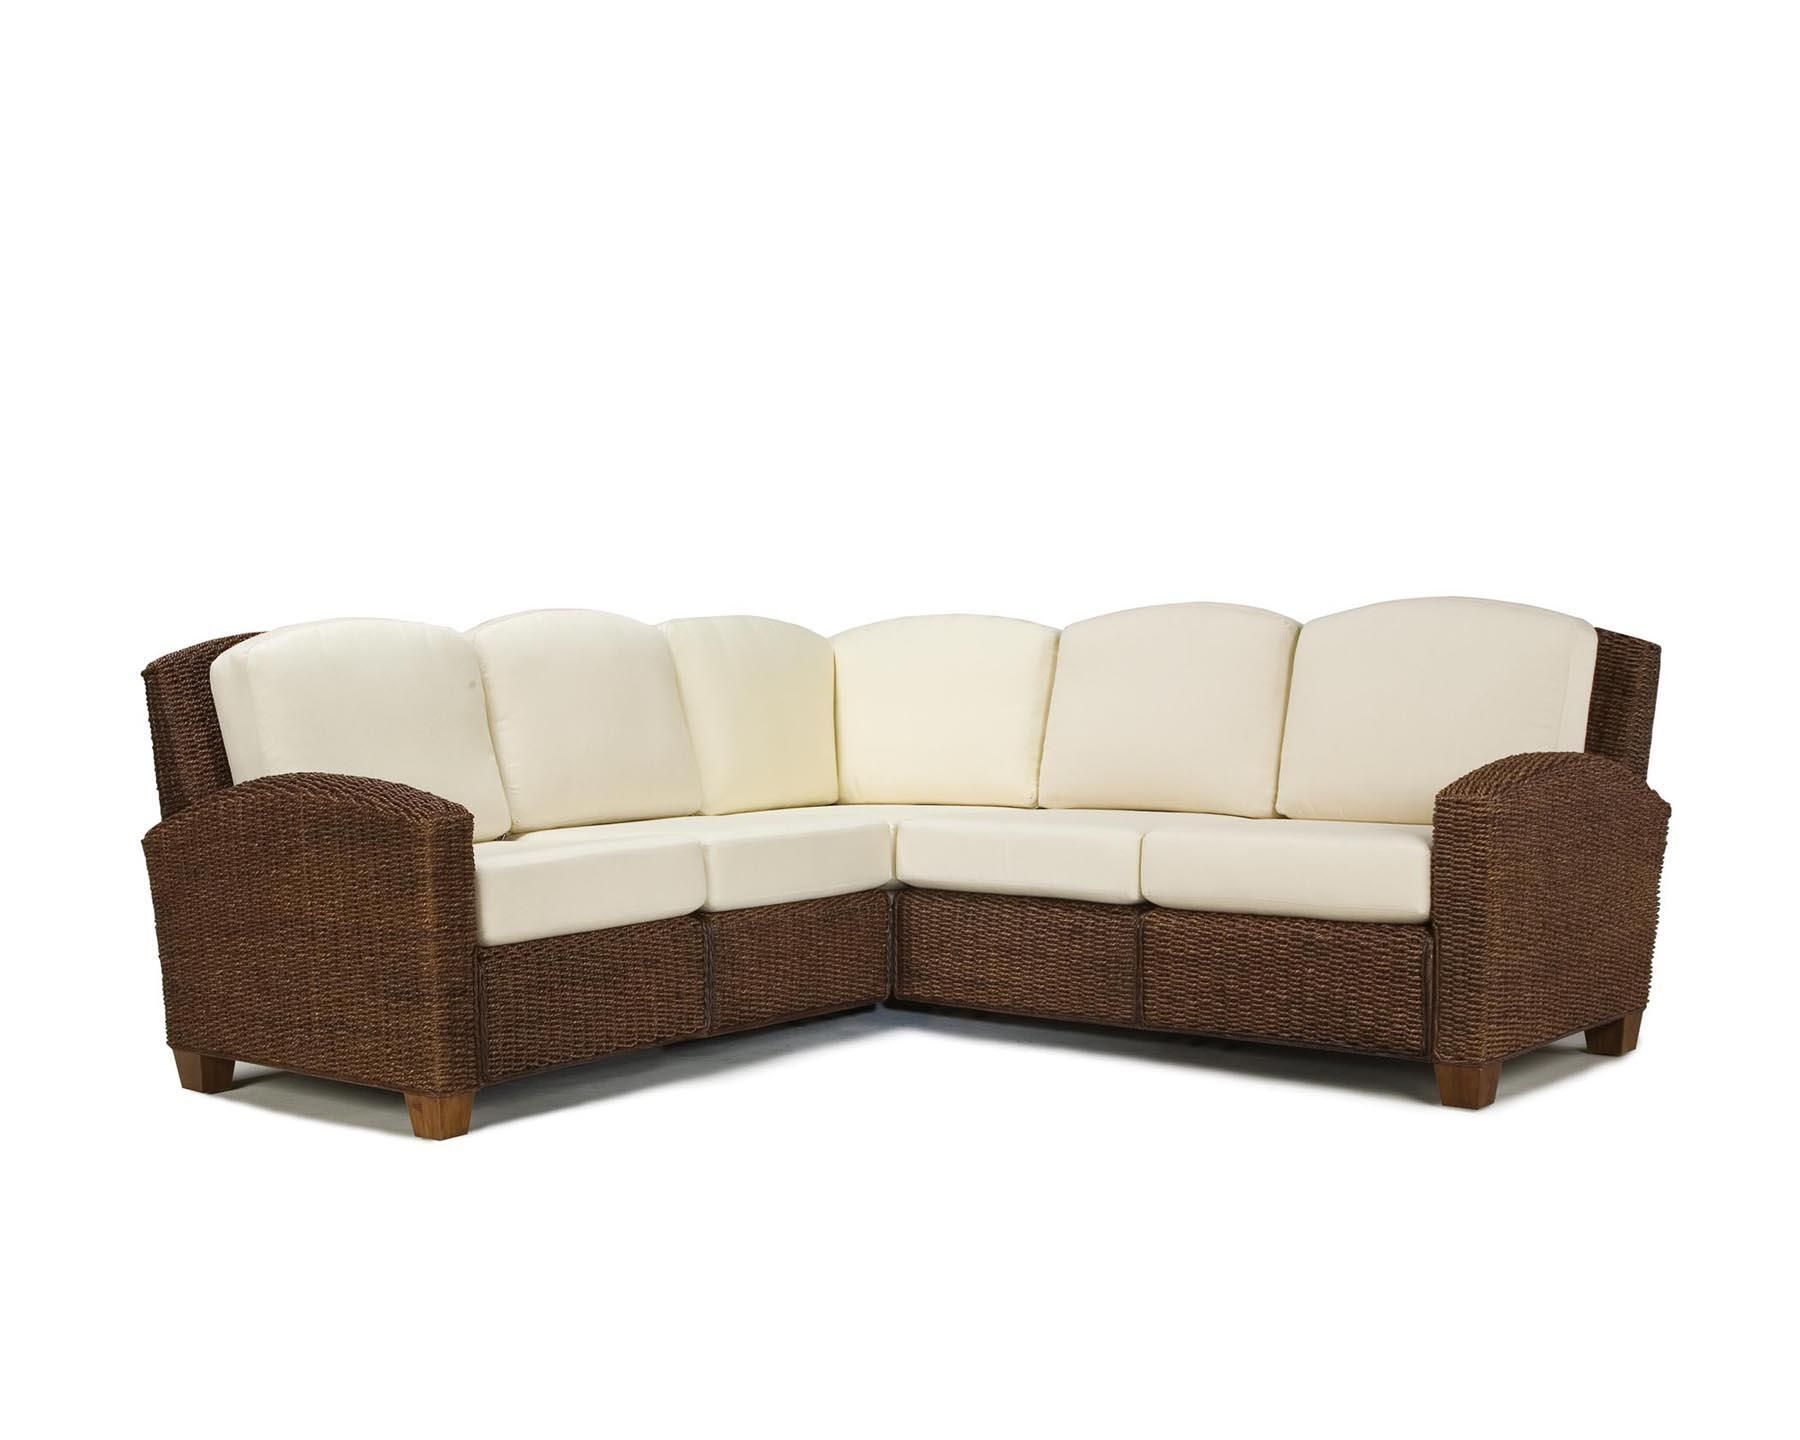 Full Size Of Sofas L Shaped Sofa Picture Concept Revit Small Inside Small L Shaped Sofas (Image 4 of 20)